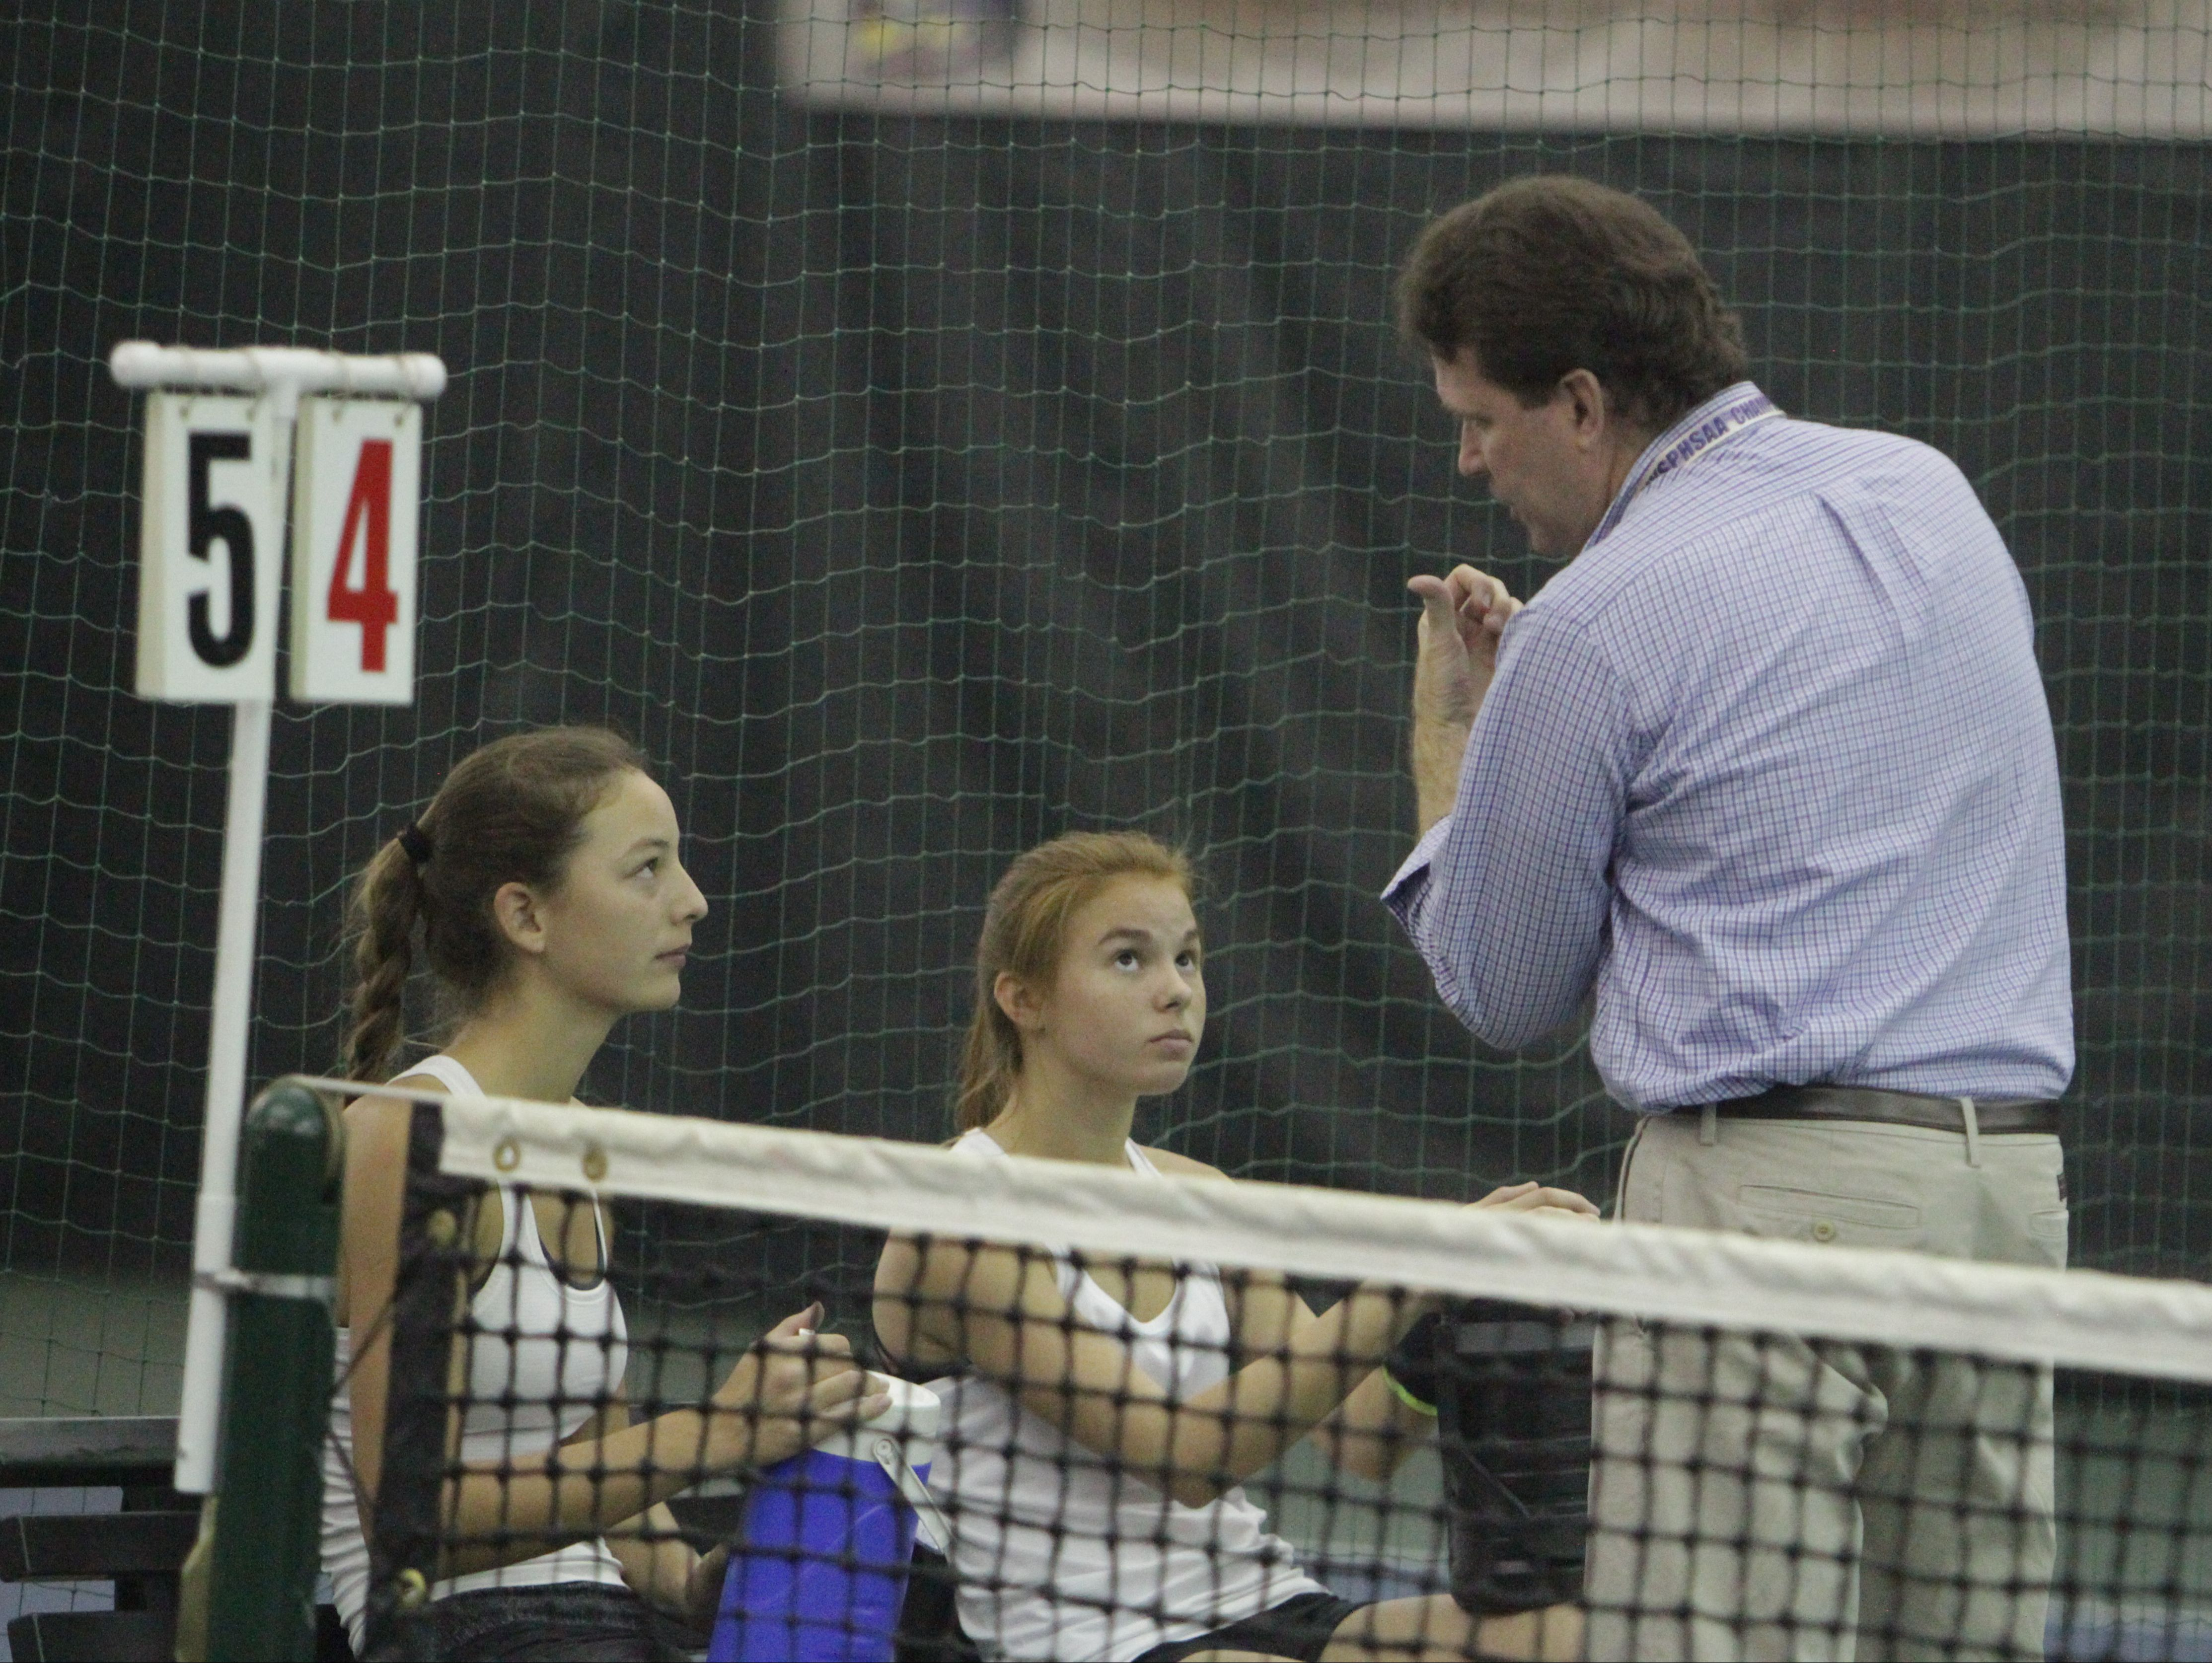 Mamaroneck's Katherine Orgielewicz (left) and Juliette Nask talk with coach Tim Hooker during a quarterfinal match at the New York State girls tennis tournament at Sound Shore Indoor Tennis in Port Chester on Sunday, Oct. 30th, 2016.